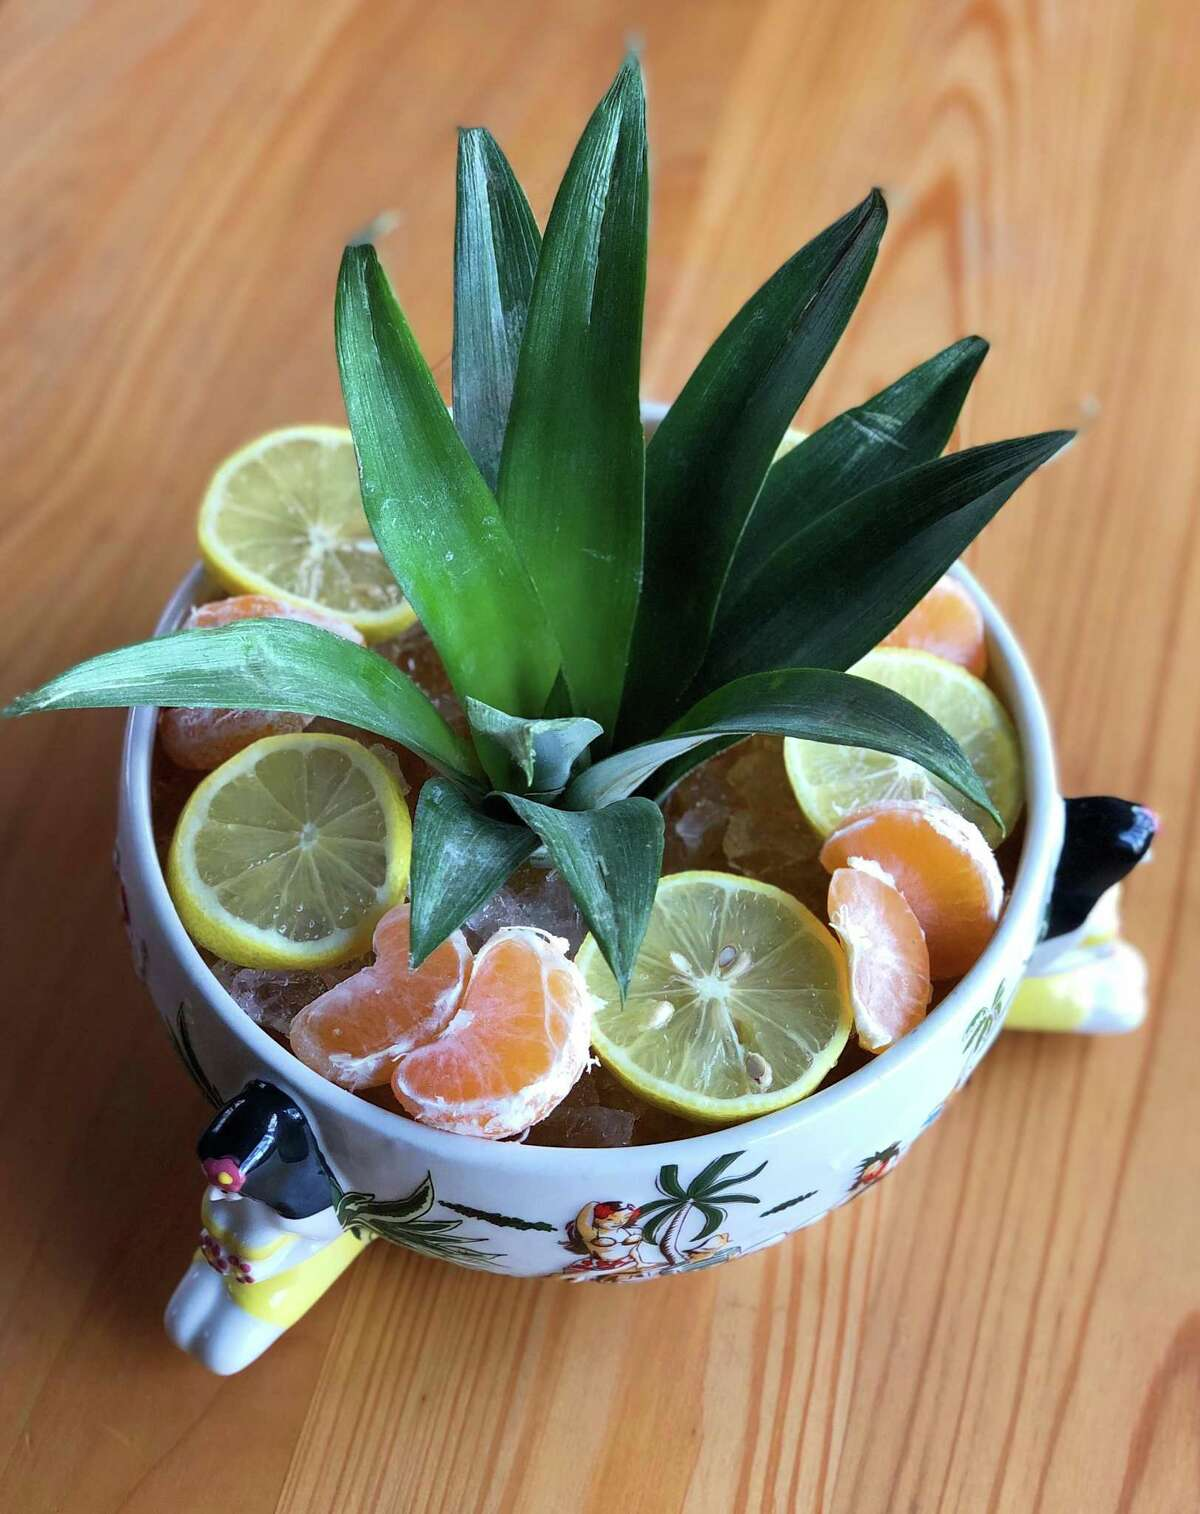 The MacColl Bowl is one of the cocktail bowl options, to be shared by two to six guests, offered at UB Preserv.